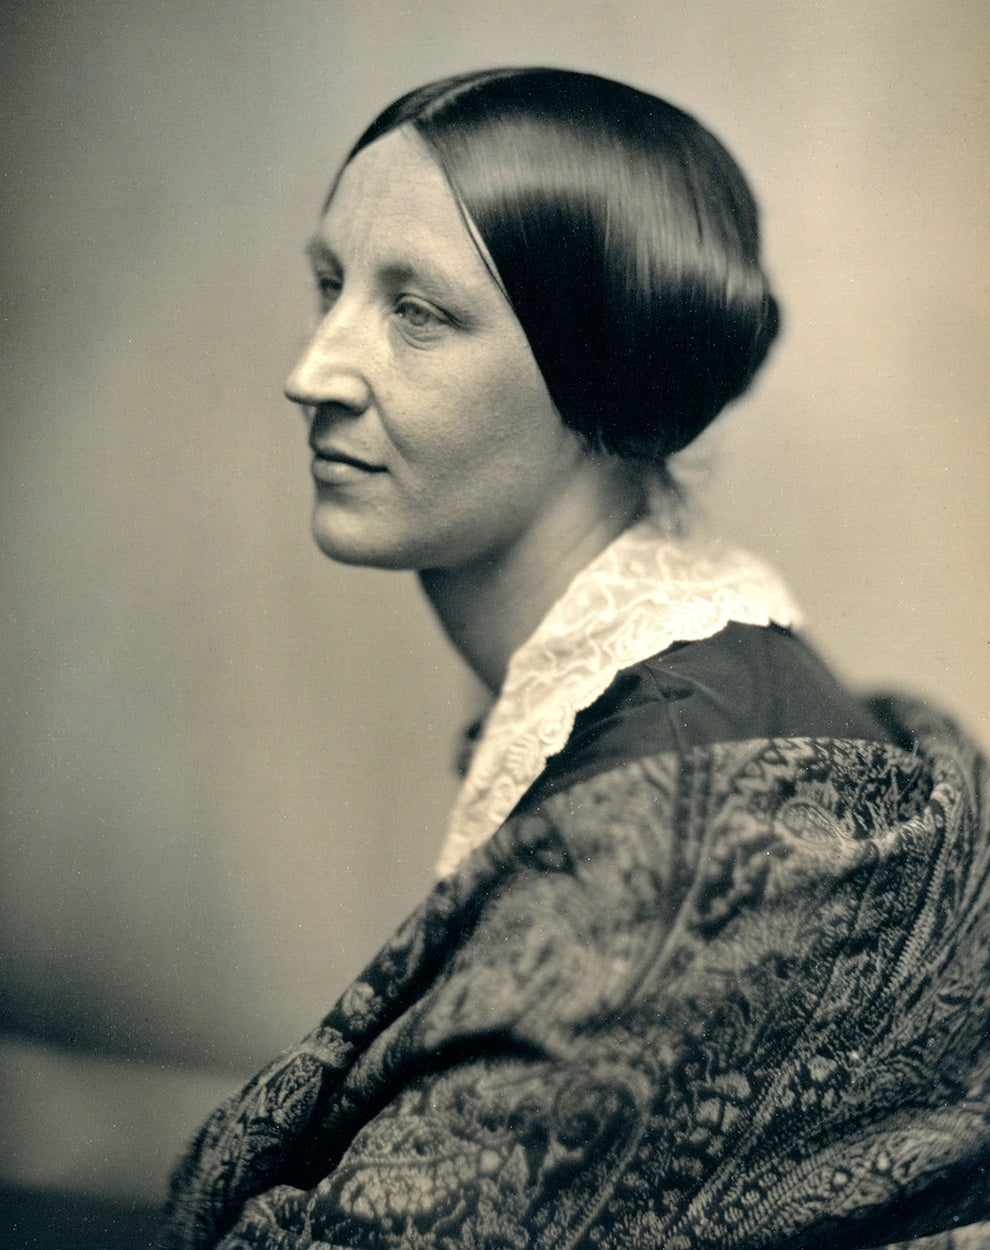 Susan B. Anthony, crusader for the women's suffrage movement.